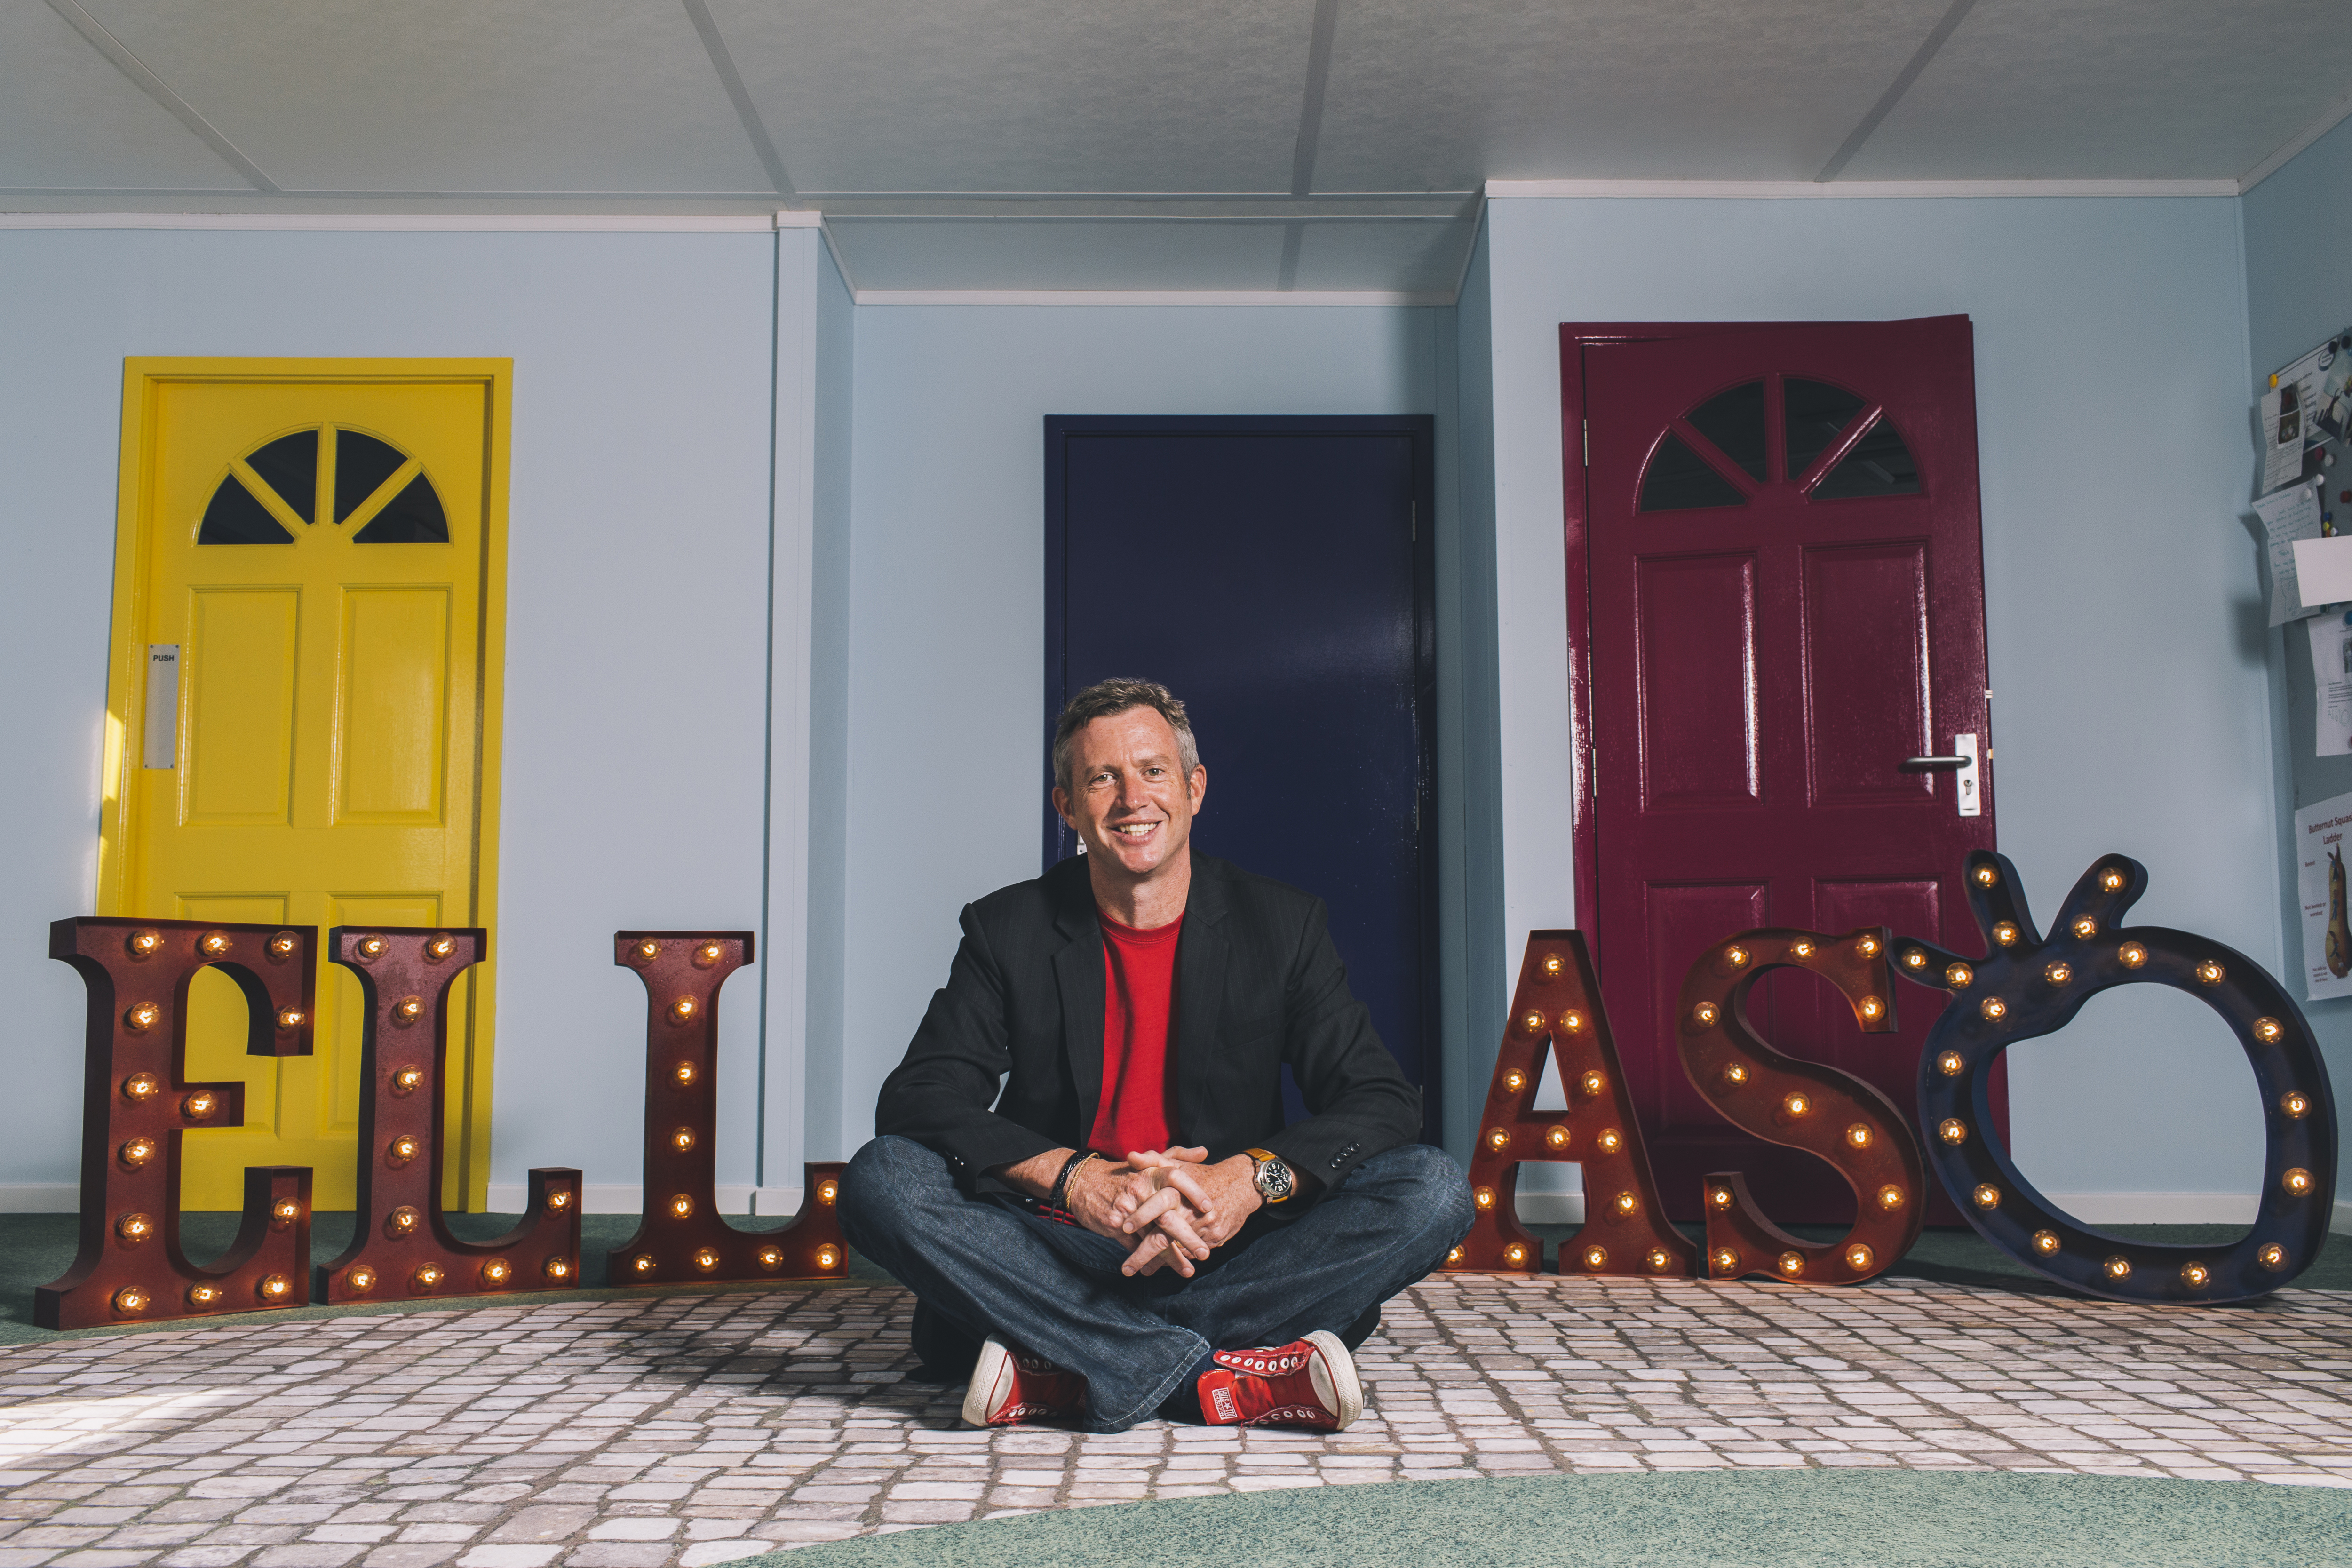 Thinking little to achieve big: Paul Lindley, founder, Ella's Kitchen